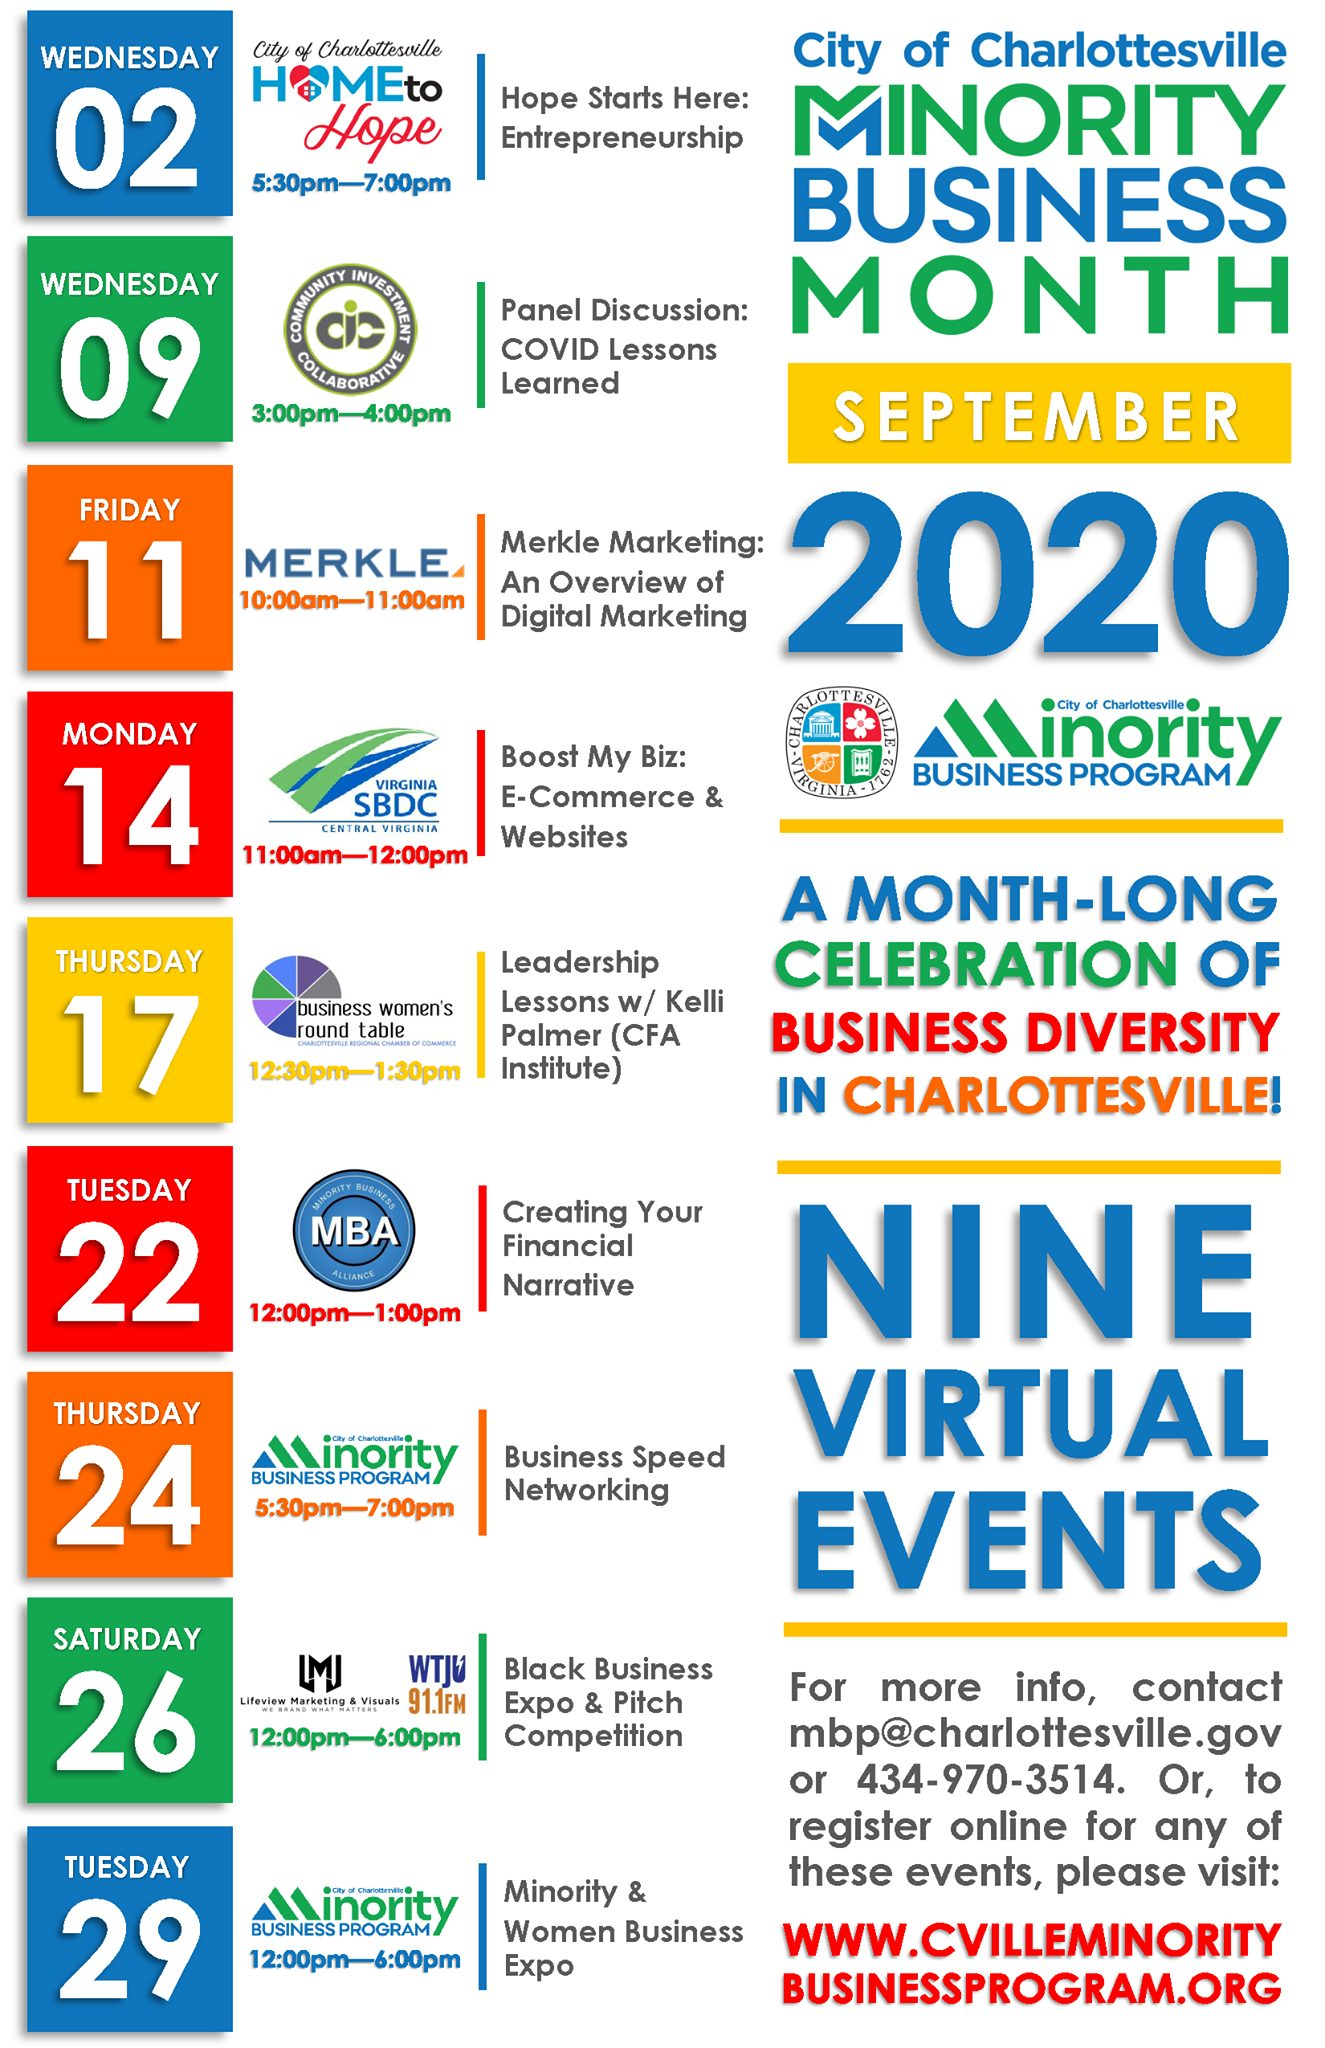 Minority Business Month update